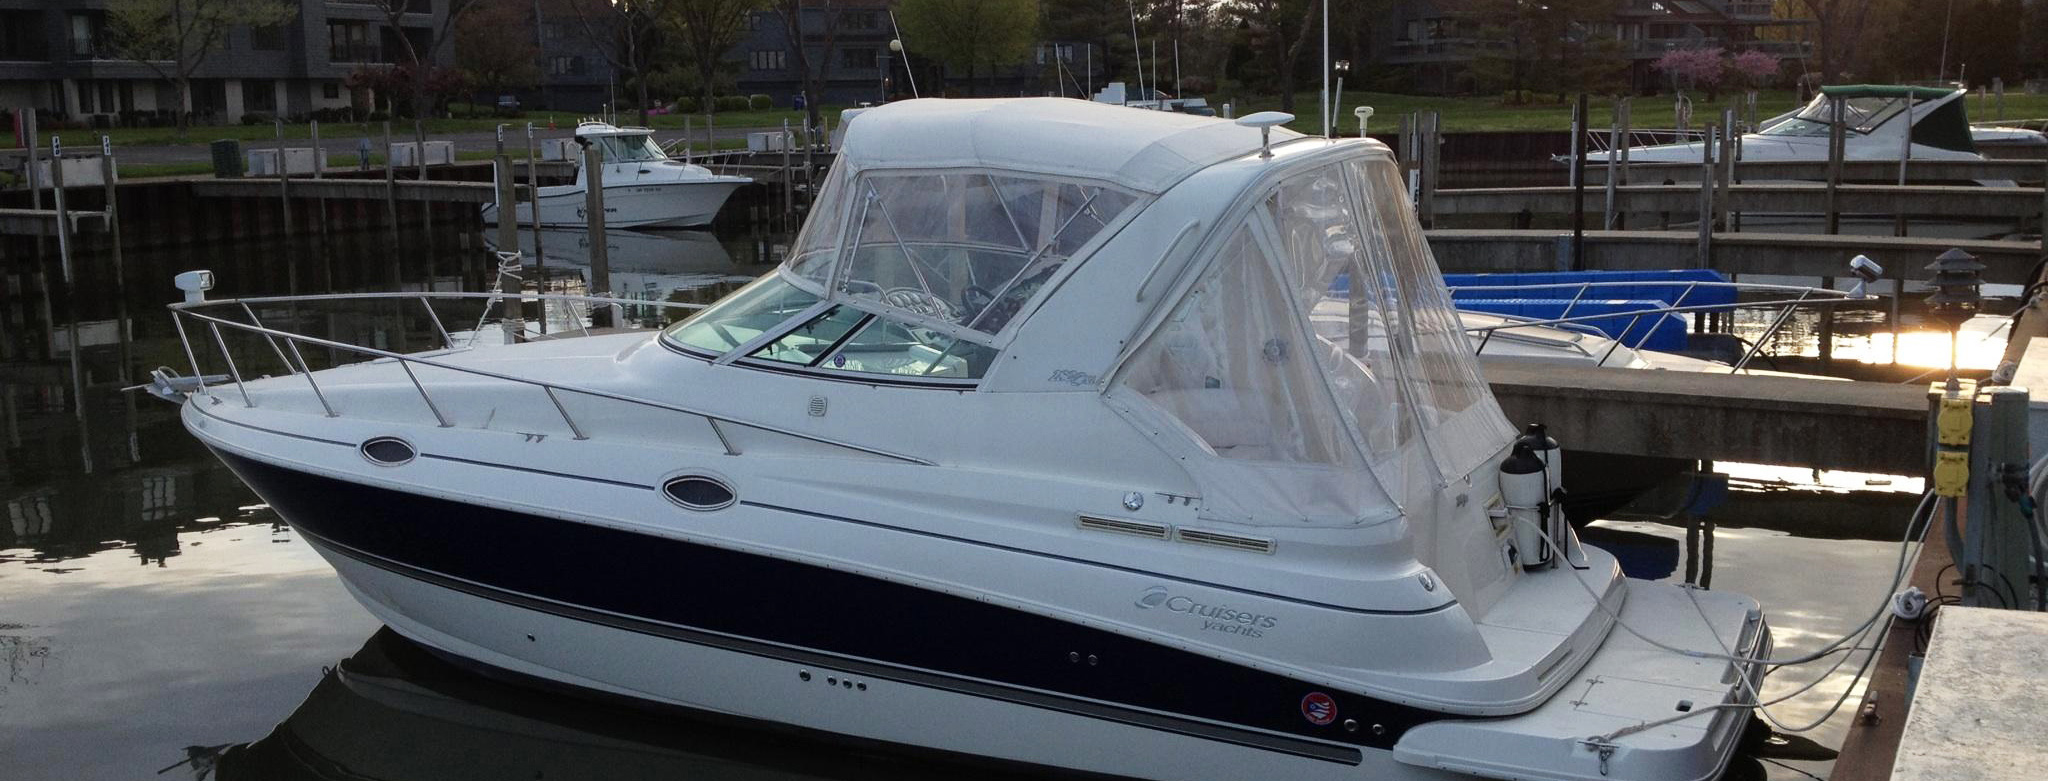 Used Boats & Yachts For Sale In Ohio | Great Lakes Boats